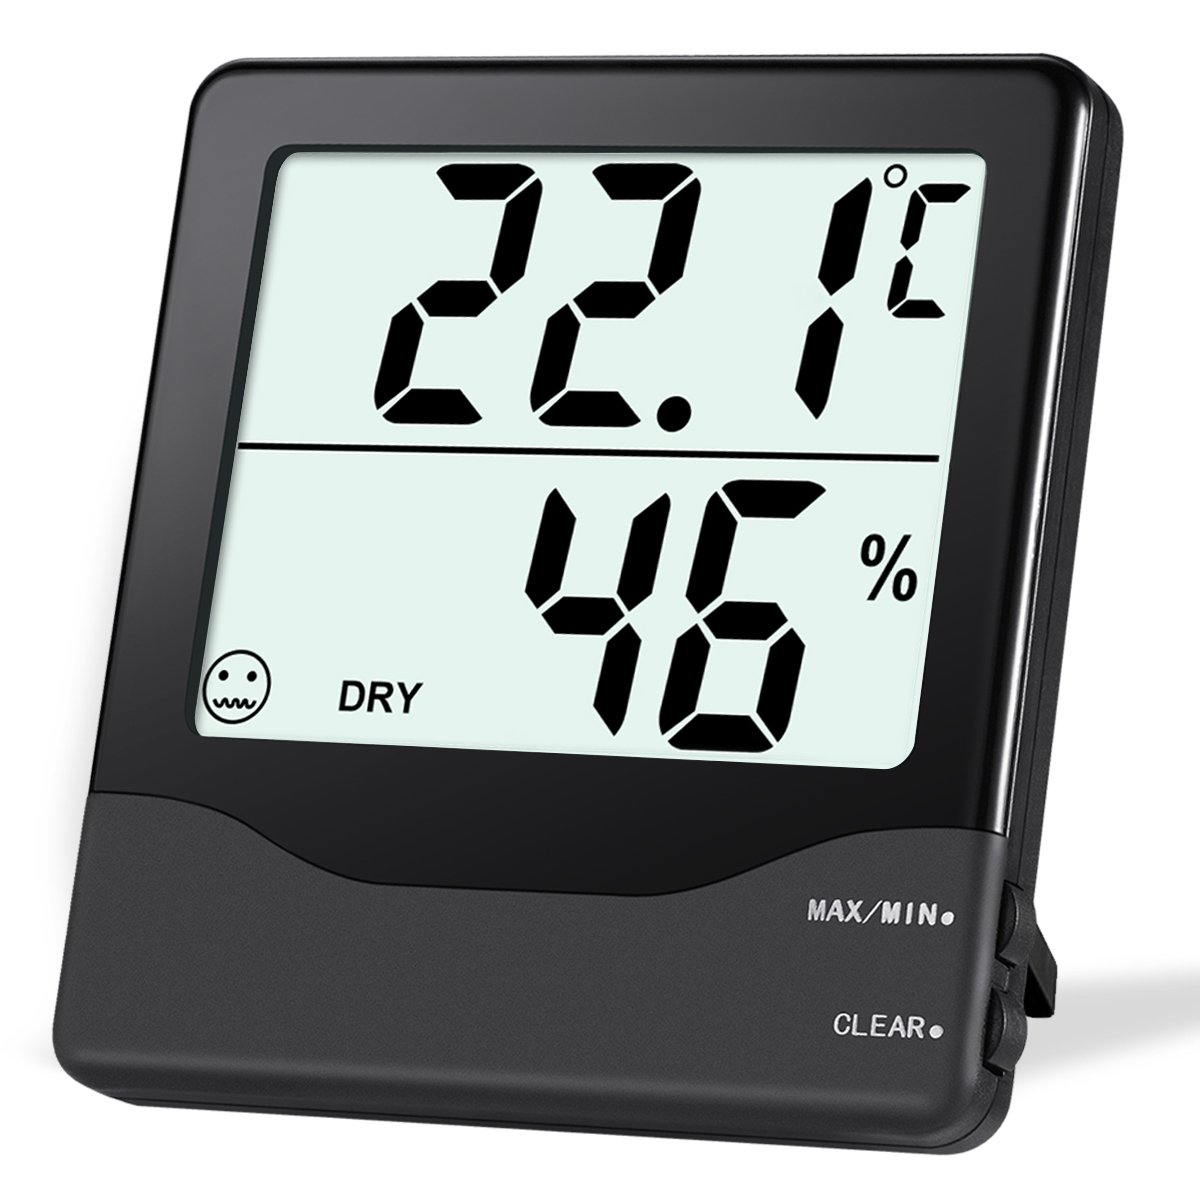 ORIA Digital Hygrometer Thermometer, Indoor Thermometer Humidity Monitor, Temperature Humidity Gauge Meter, with Comfort Indicators, MIN/MAX Records, ℃/℉ Switch, for Home, Office, Greenhouse, Room